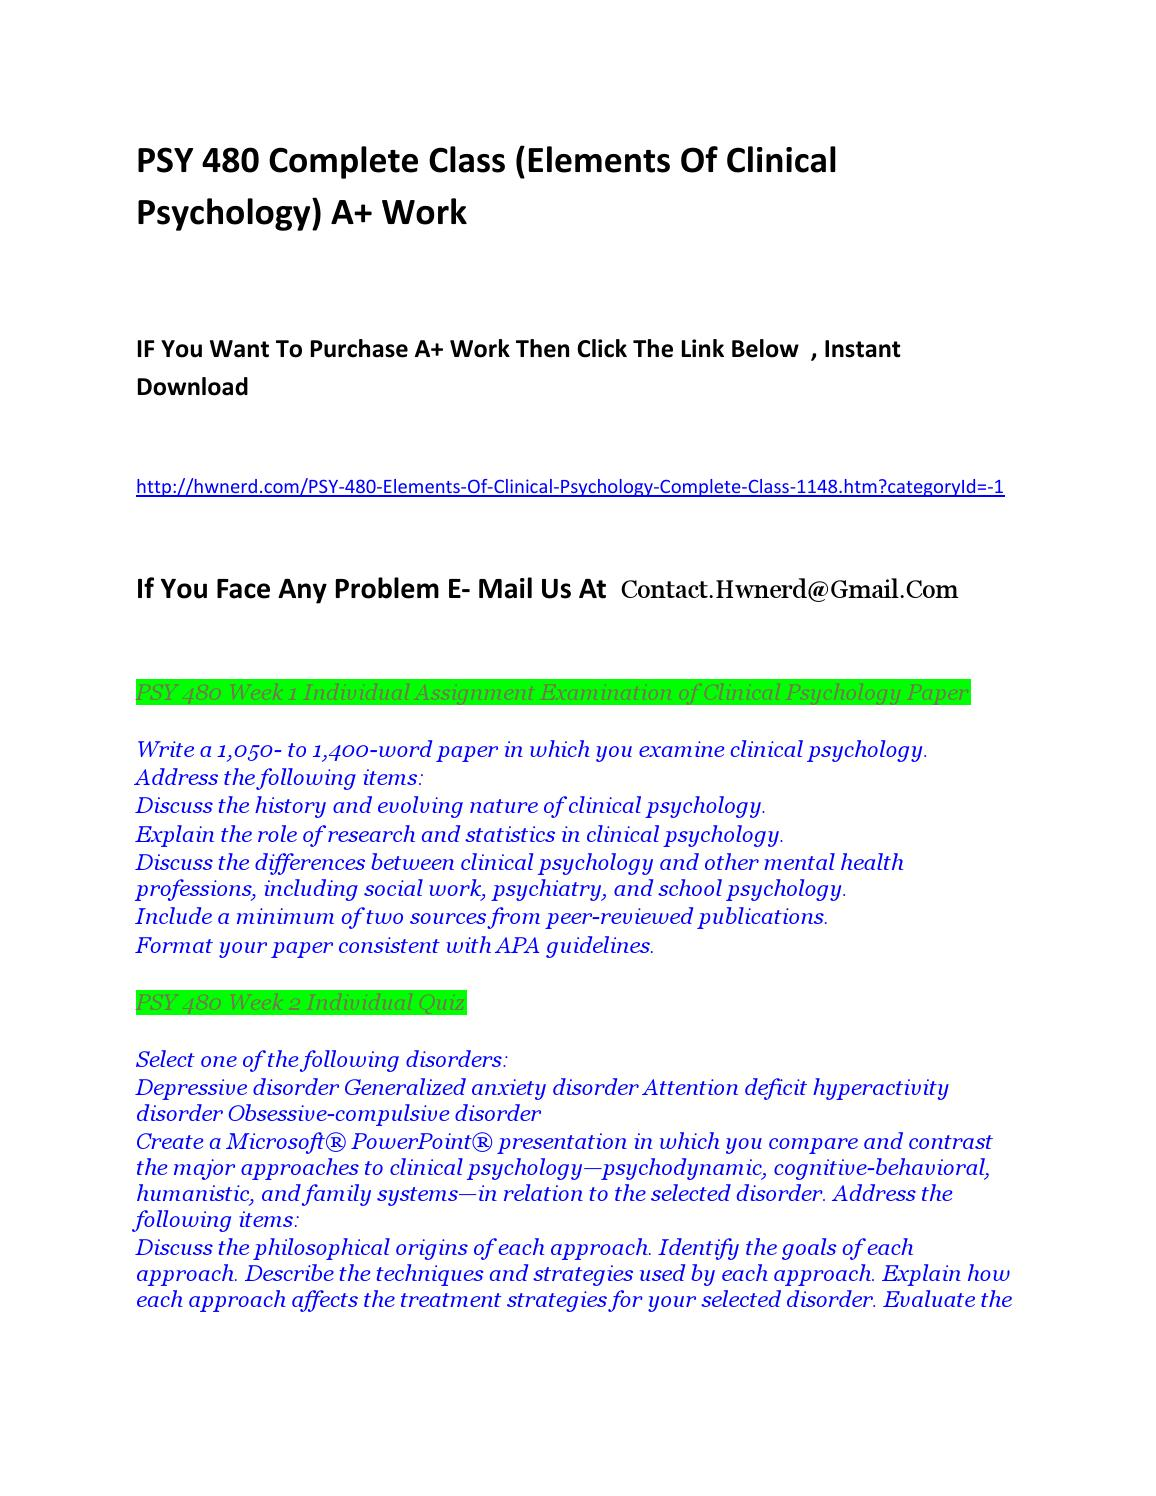 psy 480 complete class elements Write a 1,050- to 1,400-word paper in which you examine clinical psychologyaddress the following items:discuss the history and evolving nature of clinical psychologyexplain the role of research and statistics in clinical psychologydiscuss the differences between clinical psychology and other mental health professions, including social work.